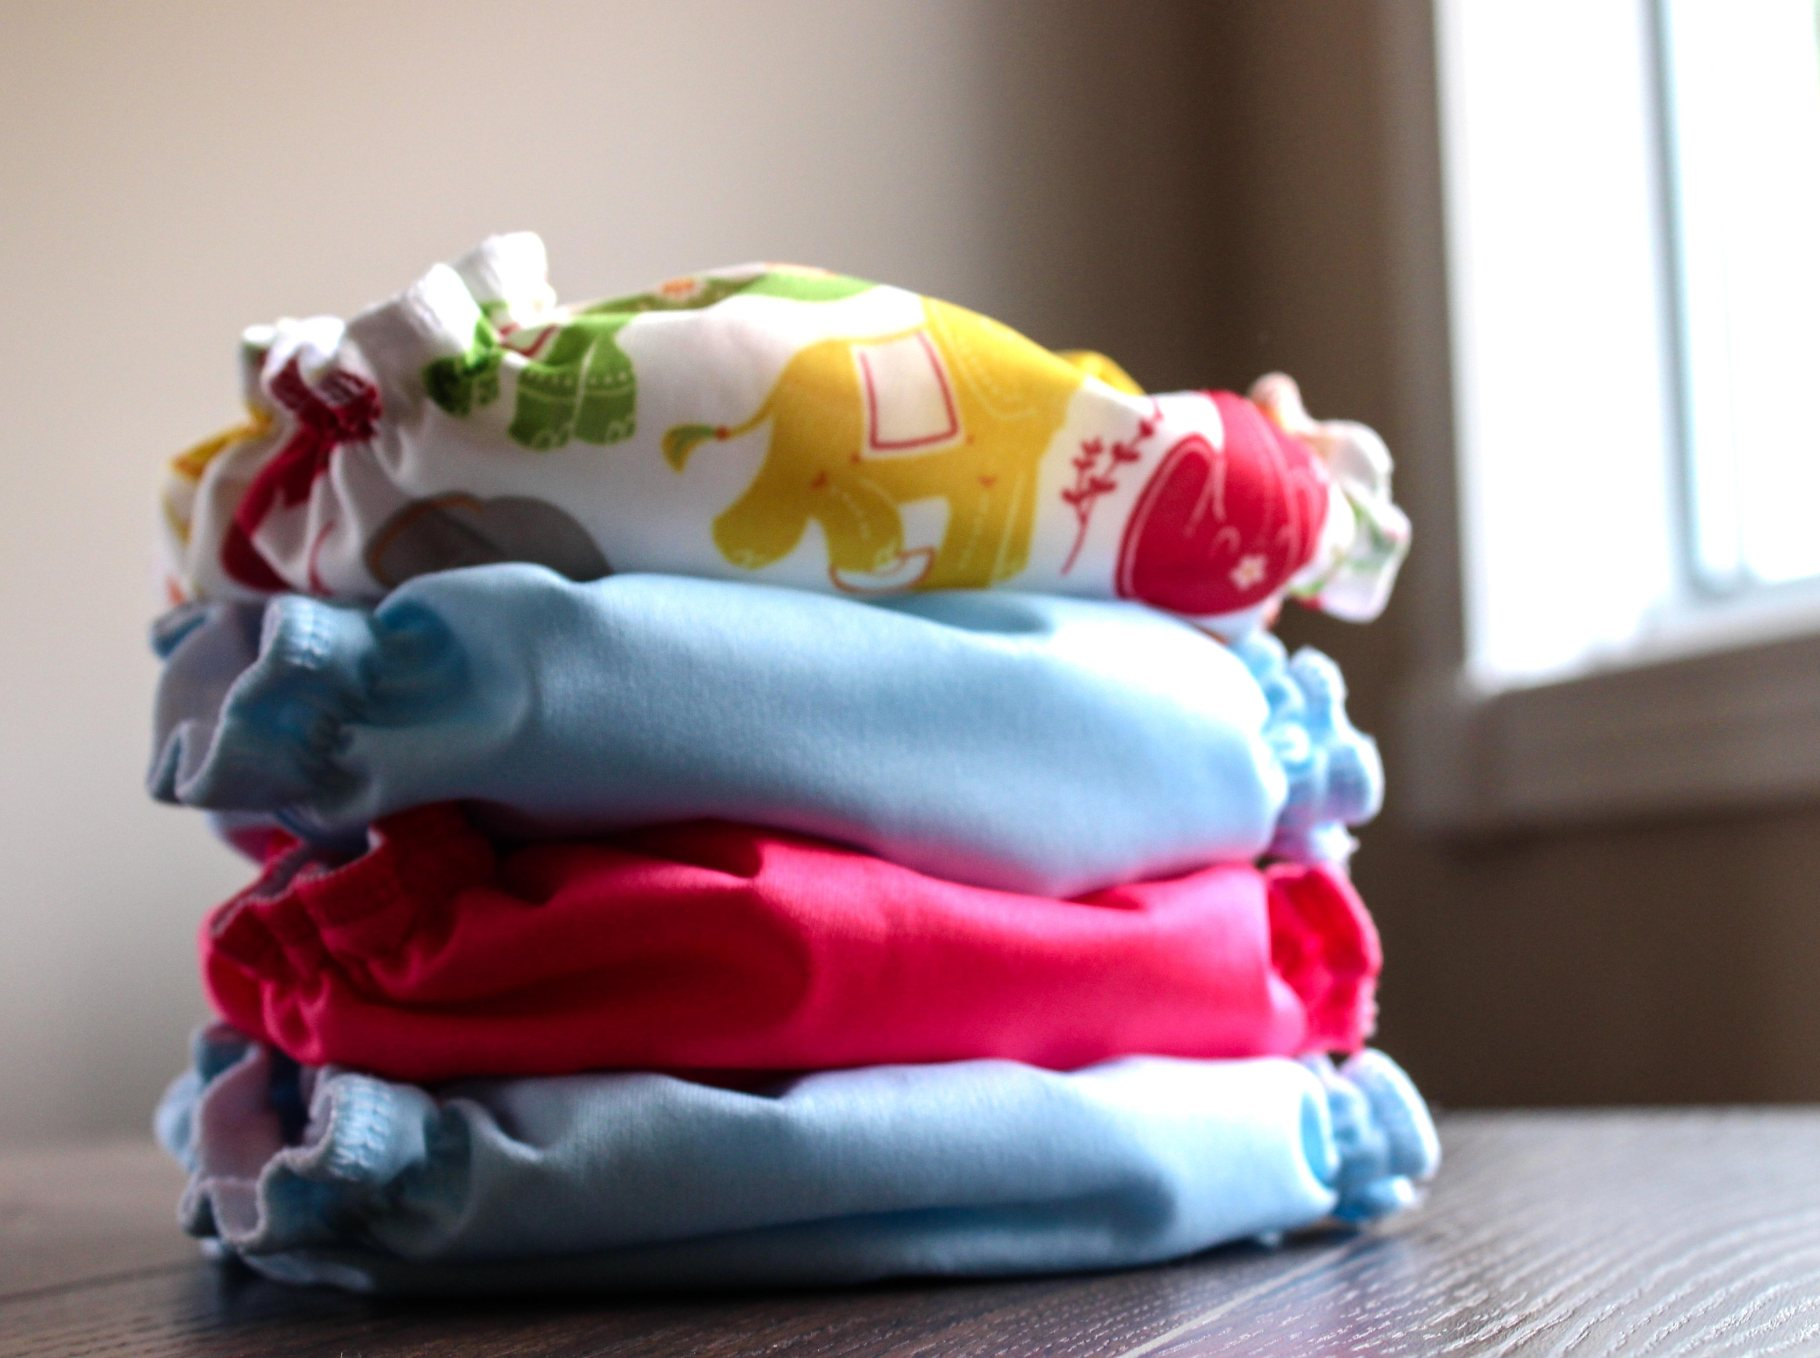 Top Five Reasons I plan to use Cloth Diapers